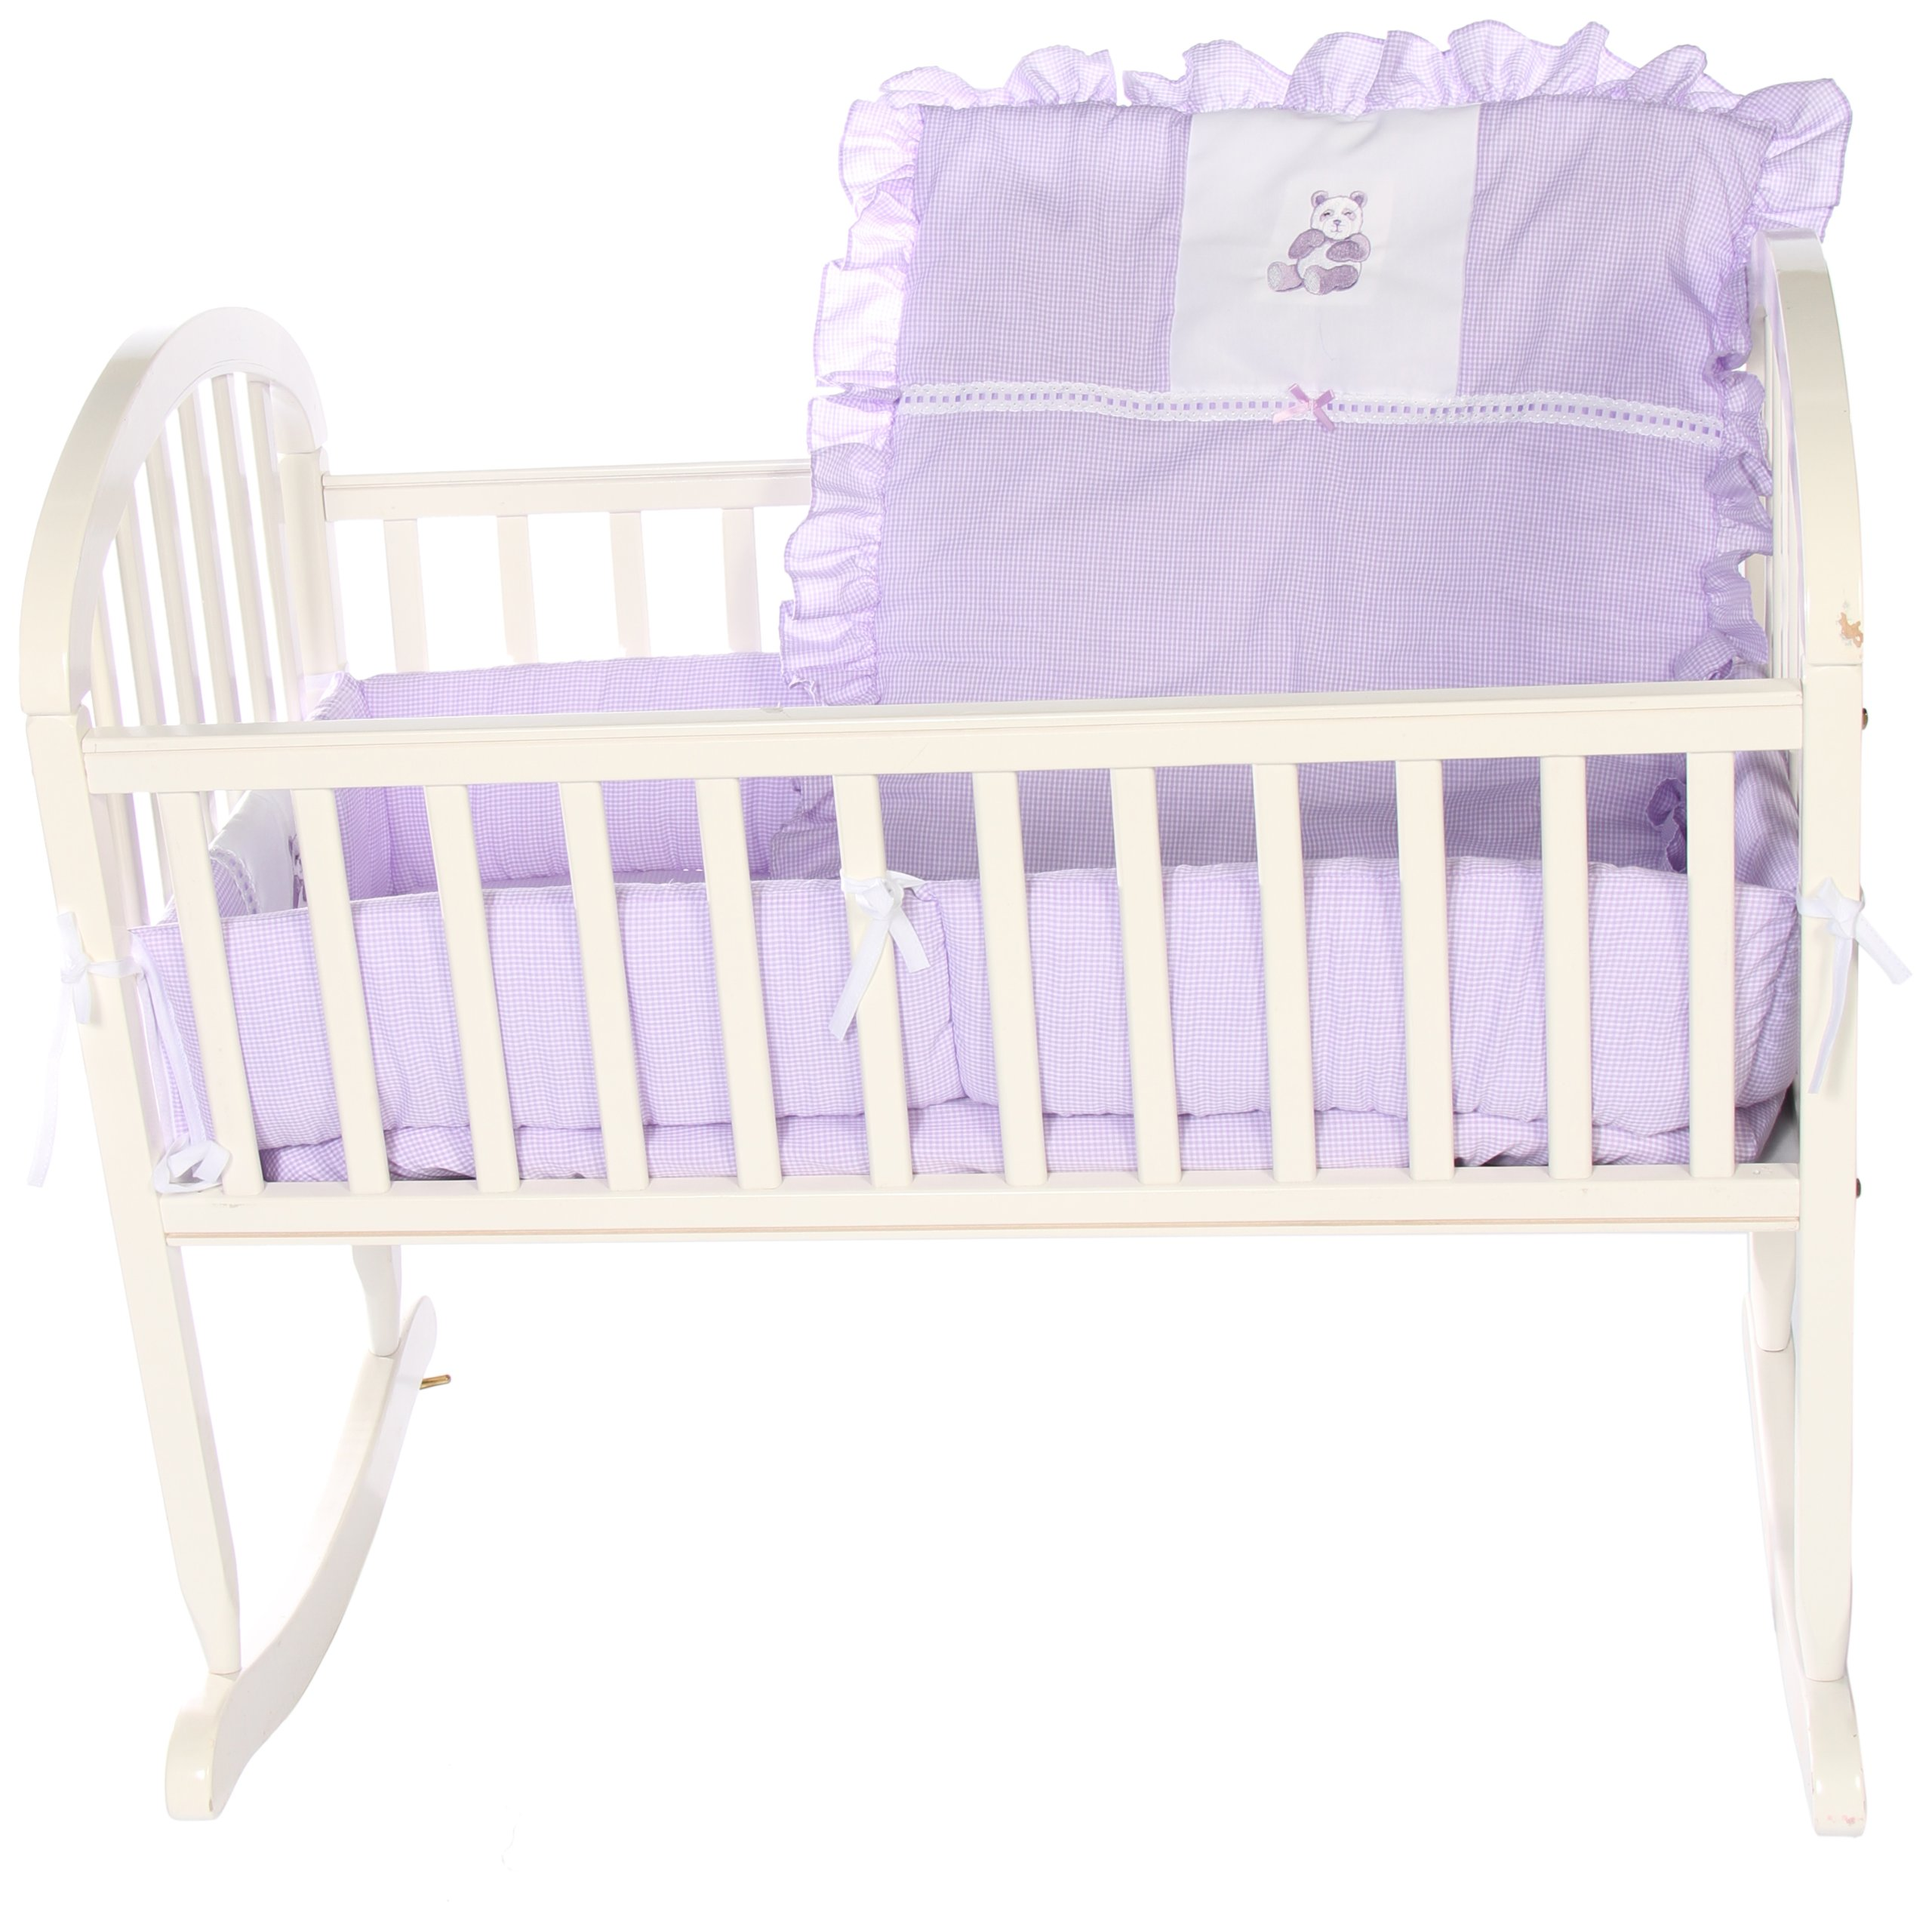 Baby Doll Bedding Gingham with Bear Applique Cradle Bedding Set, Lavender